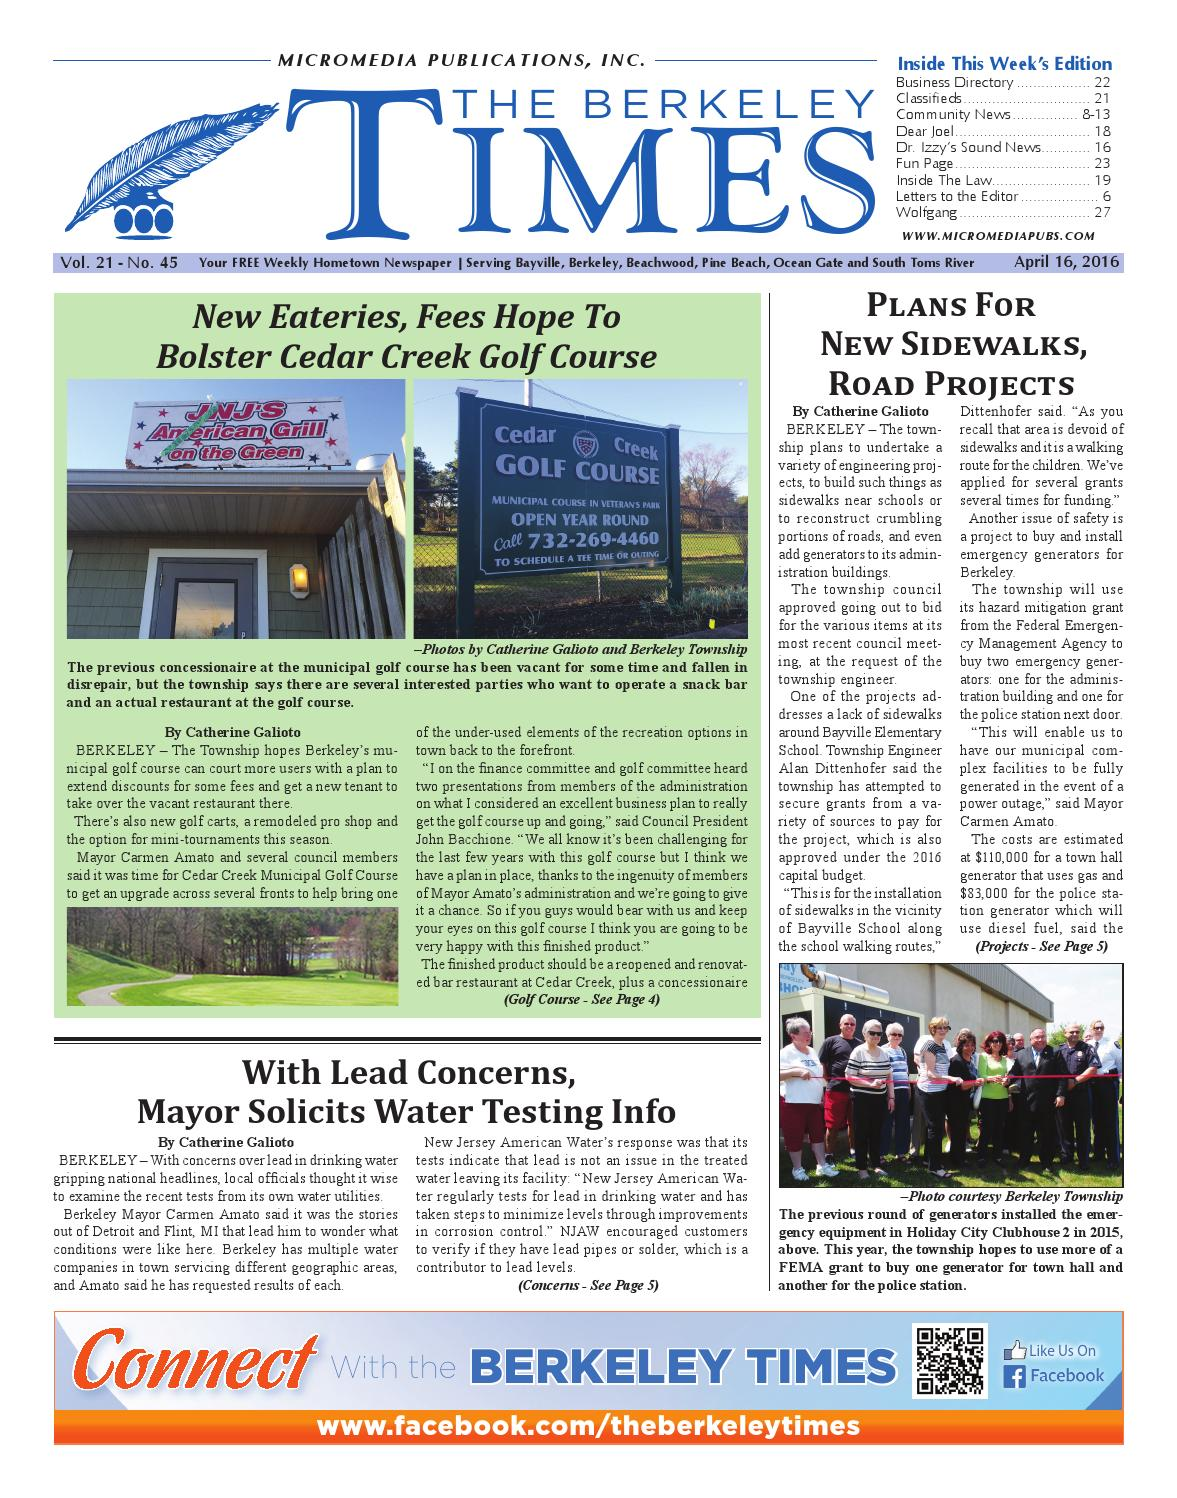 2016 04 16 the berkeley times by micromedia publications issuu aiddatafo Choice Image